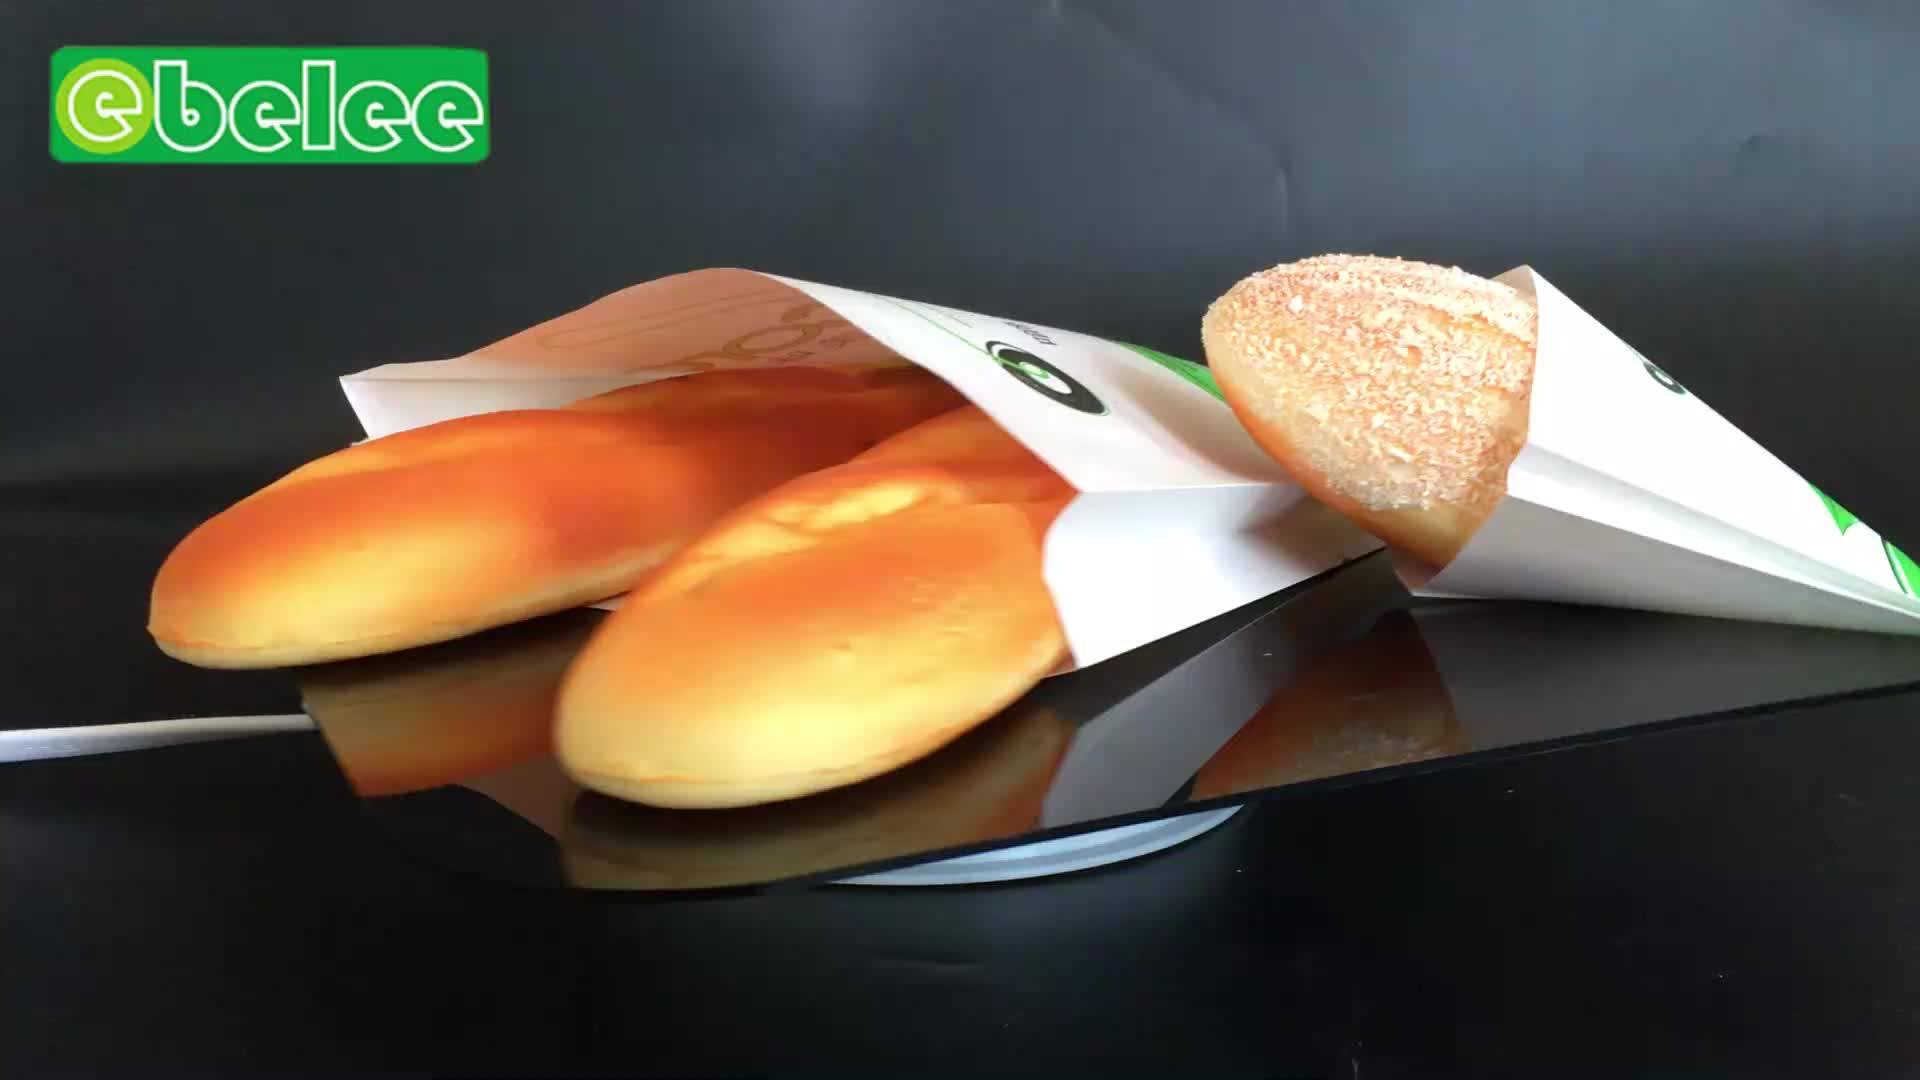 custom printed sandwich paper wrapping